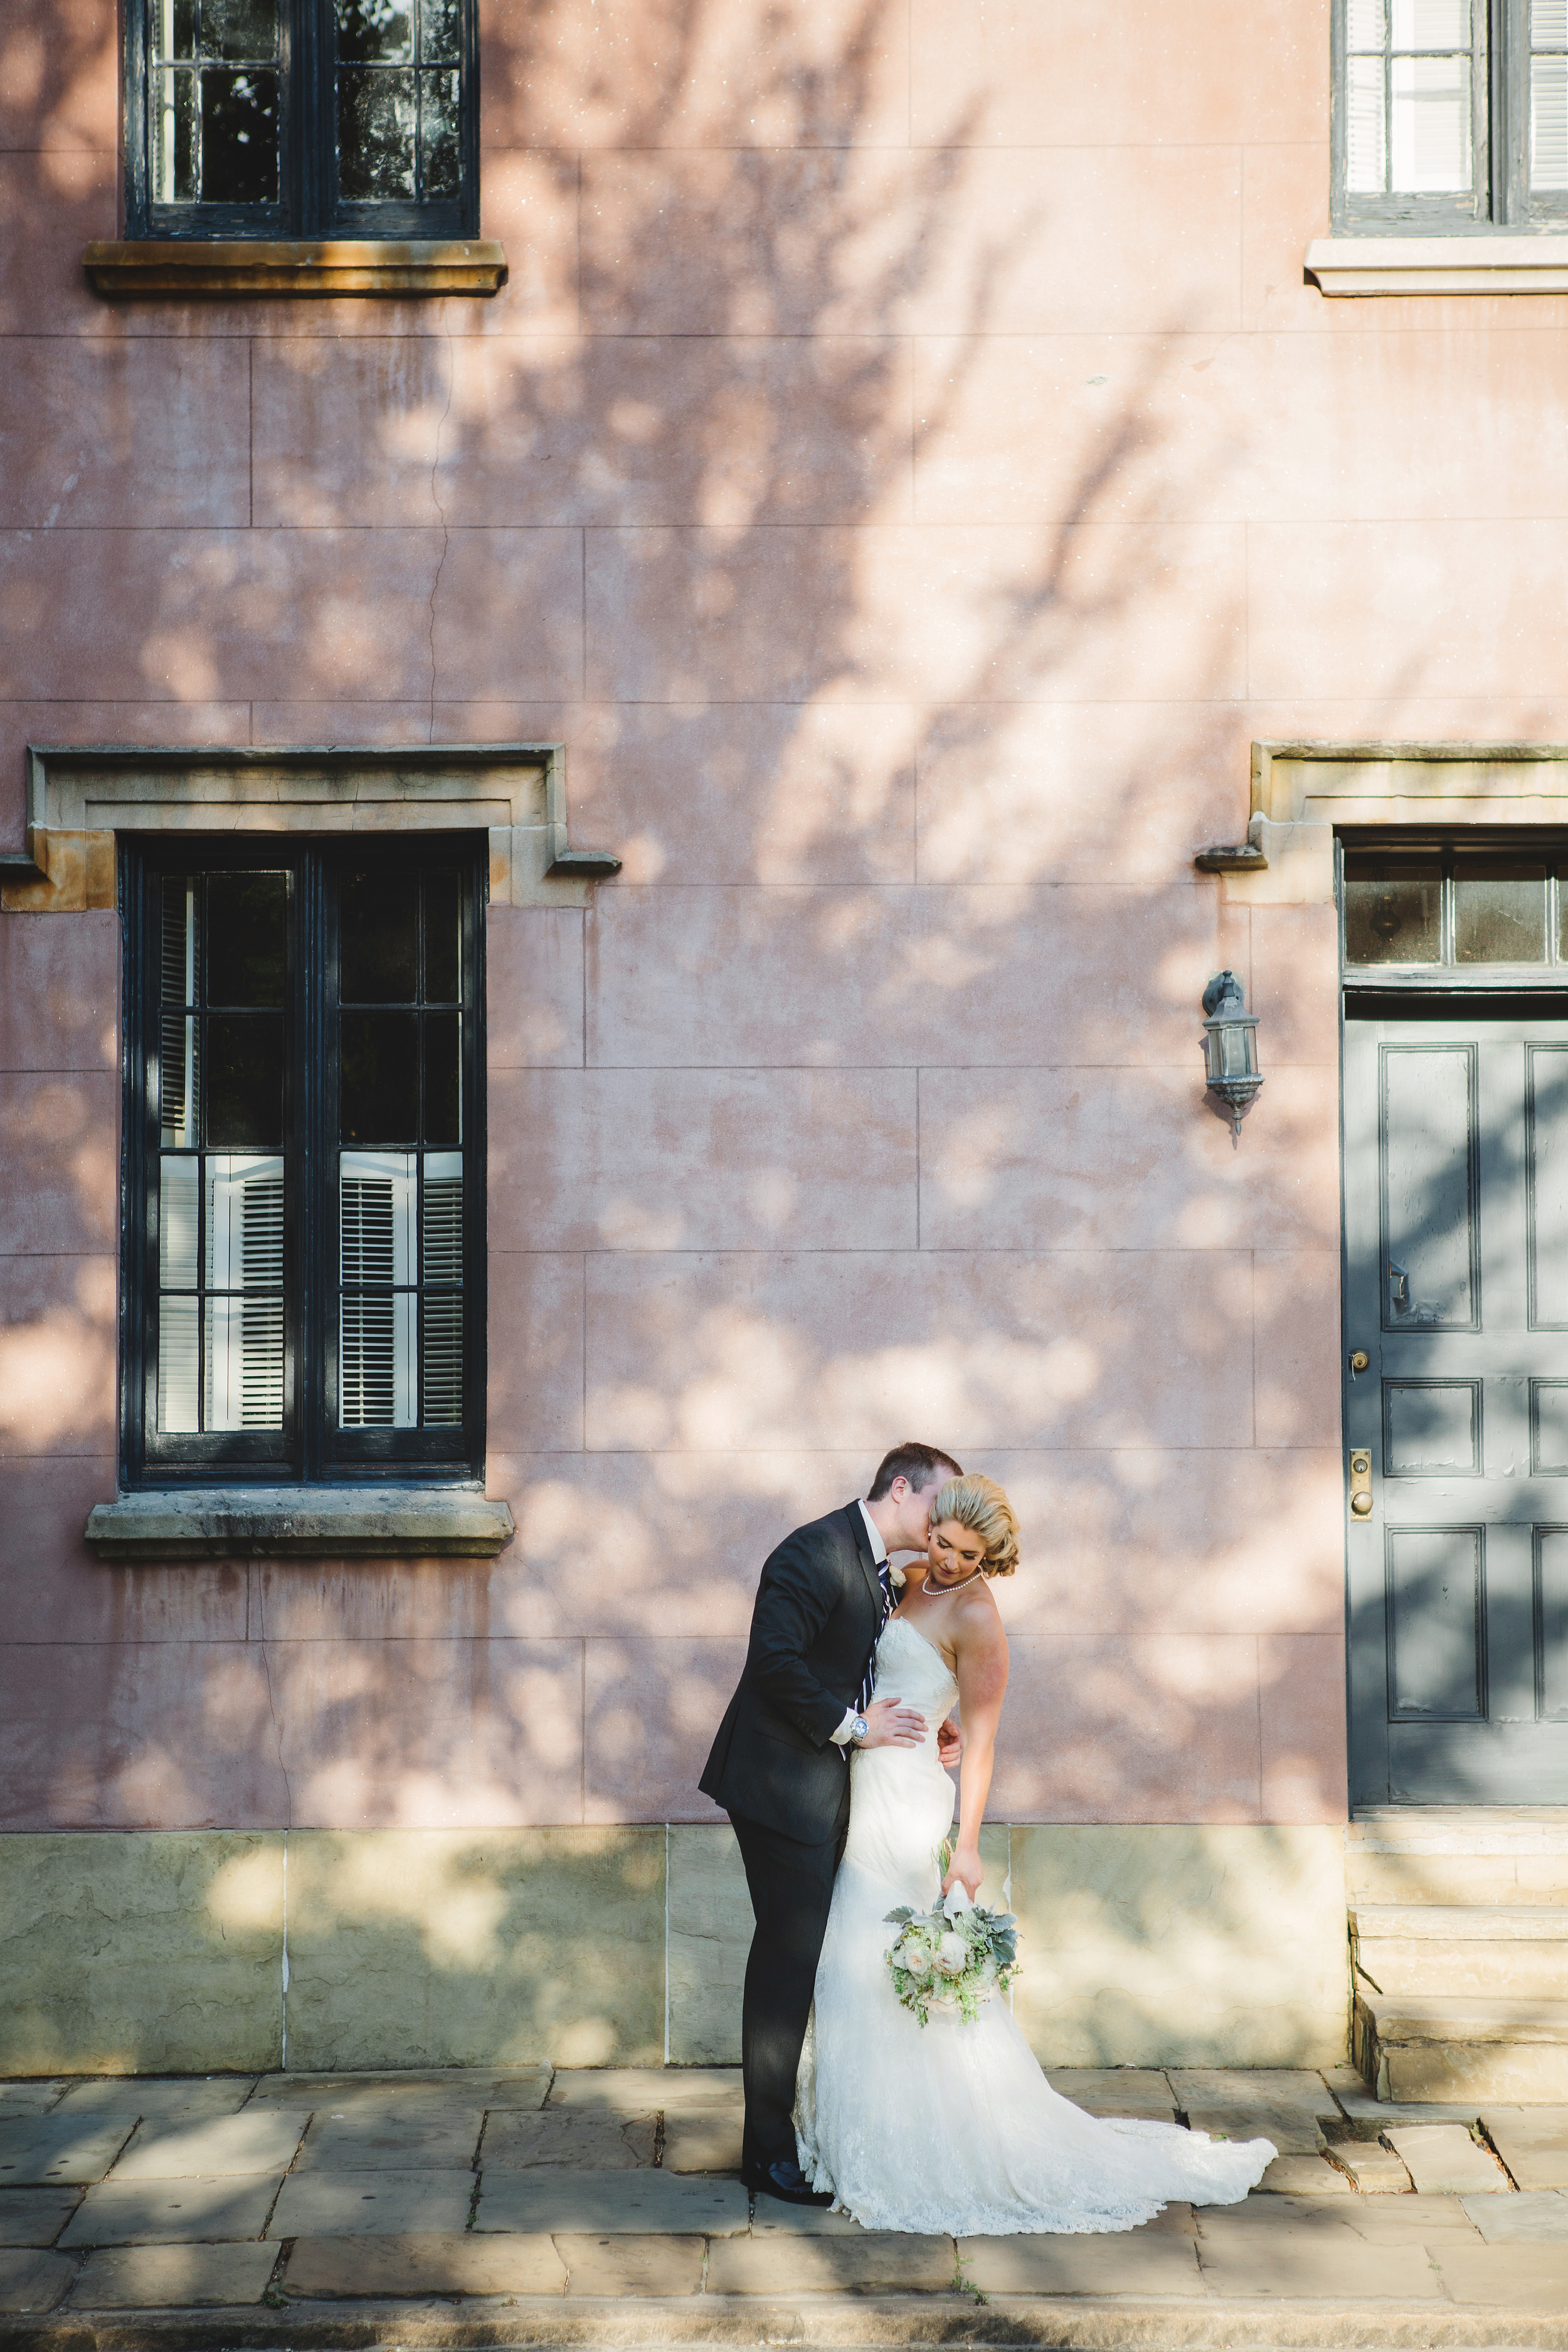 Hillary-and-Brian-izzy-hudgins-photography-anais-anette-tristan-lace-mermaid-wedding-dress-ivory-and-beau-bridal-boutique-savannah-bridal-boutique-savannah-wedding-dresses-savannah-bridal-gowns-savannah-wedding-dresses-first-babtist-savannah-33.jpg